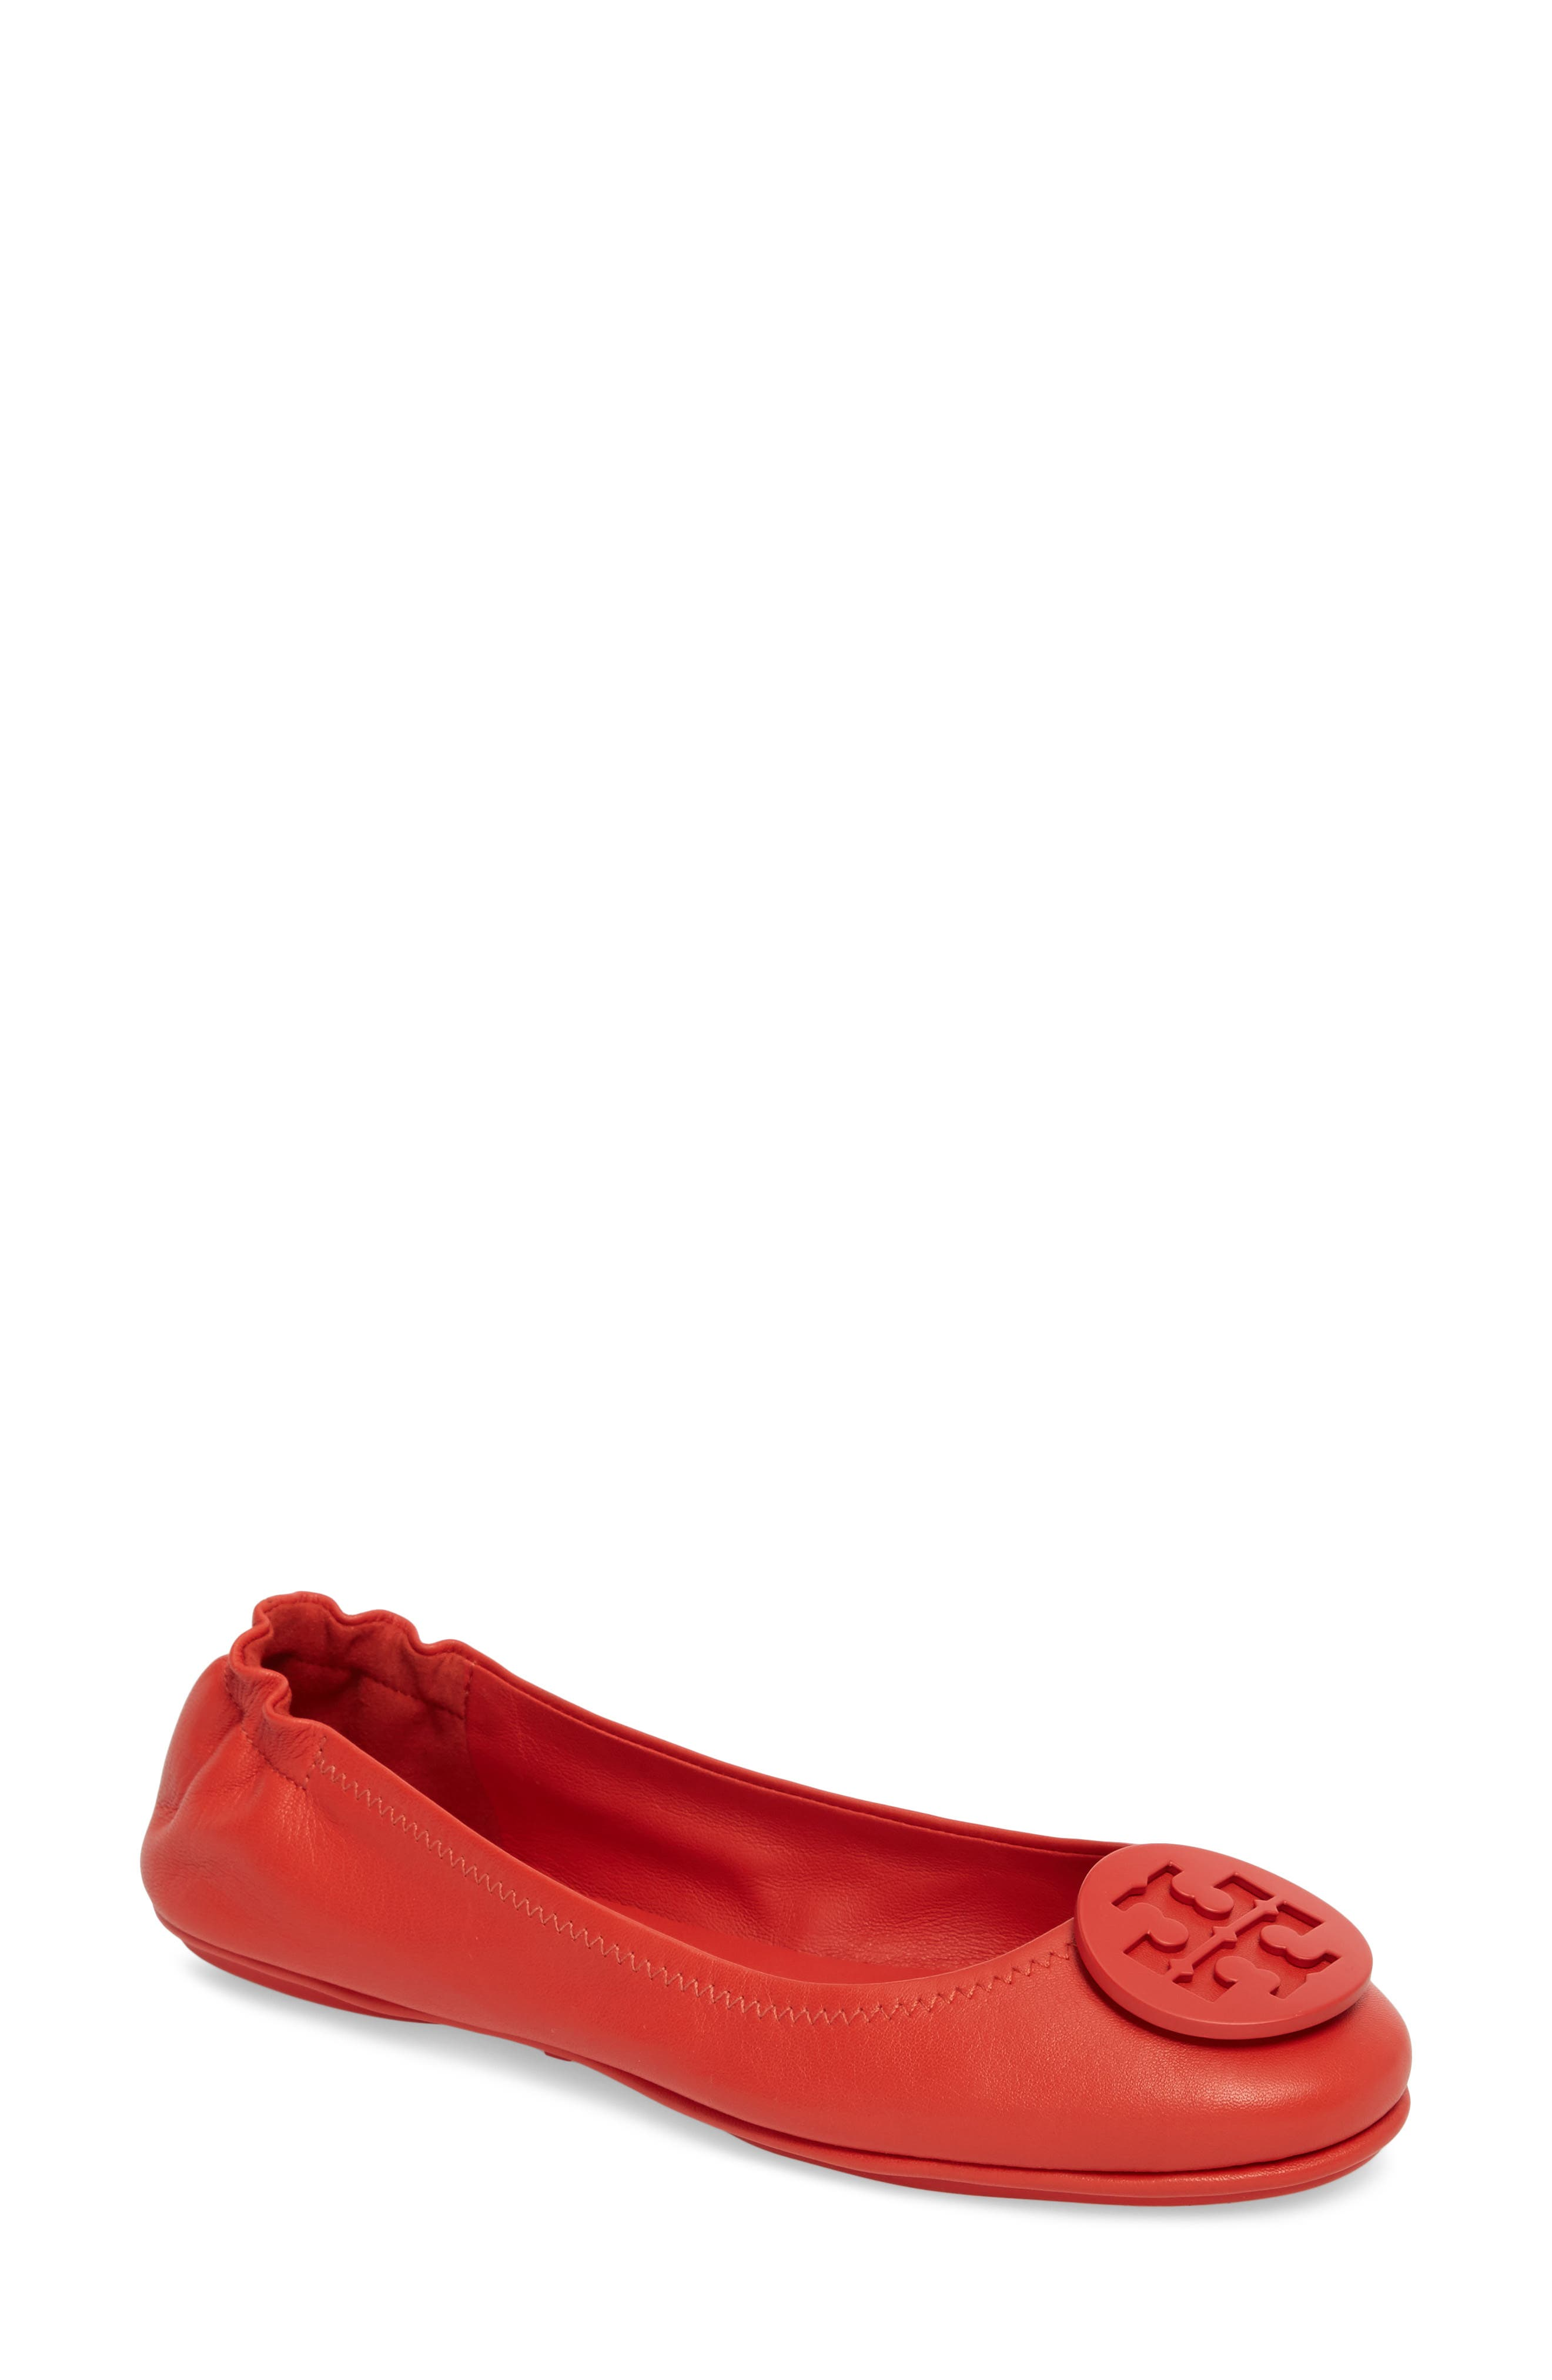 Alternate Image 1 Selected - Tory Burch 'Minnie' Travel Ballet Flat (Women)